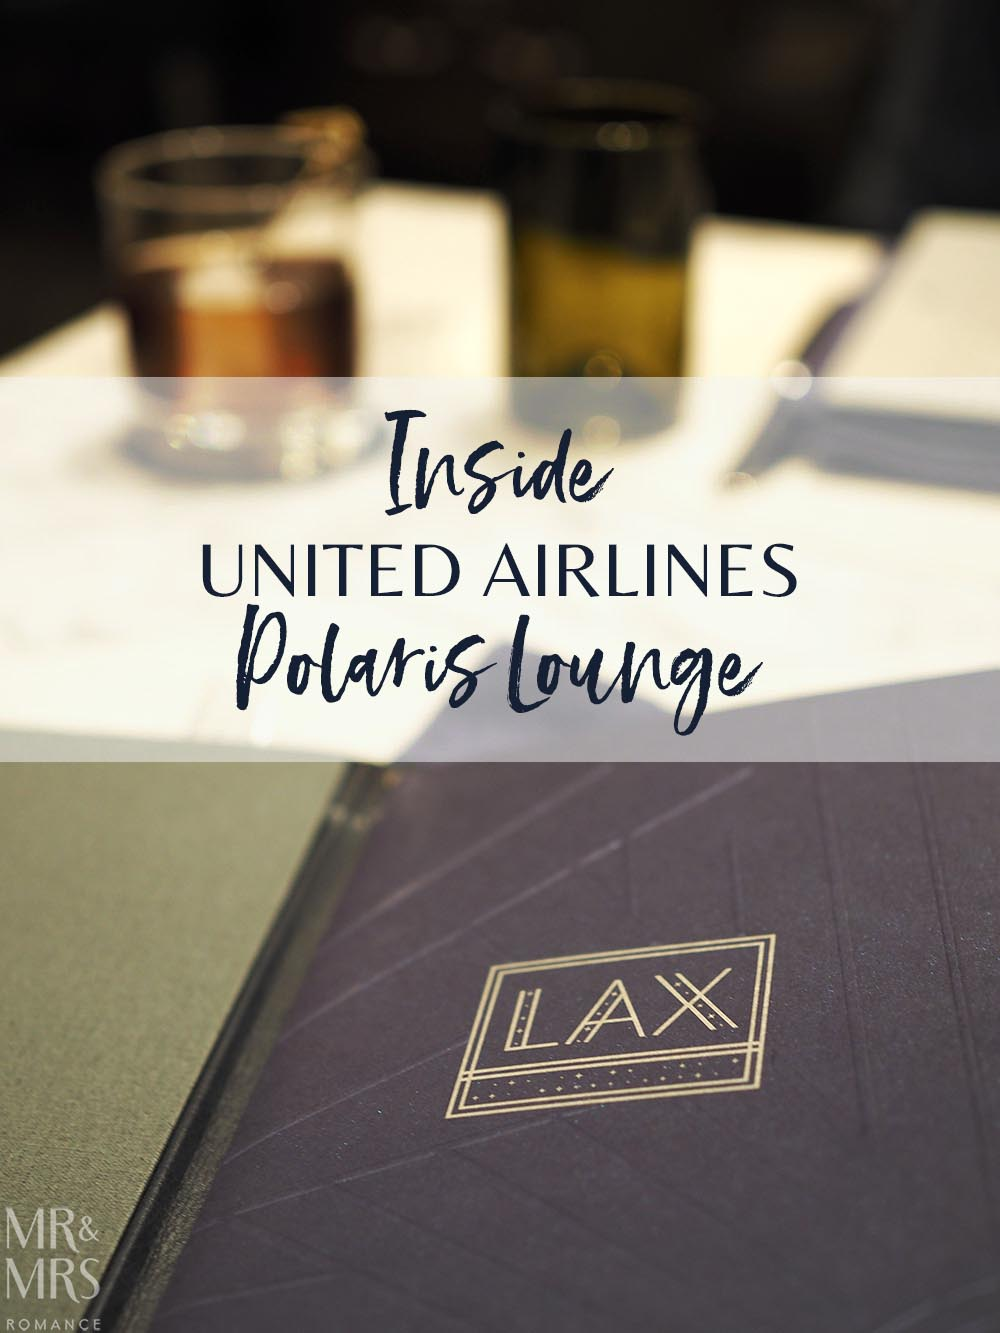 United Polaris Lounge review